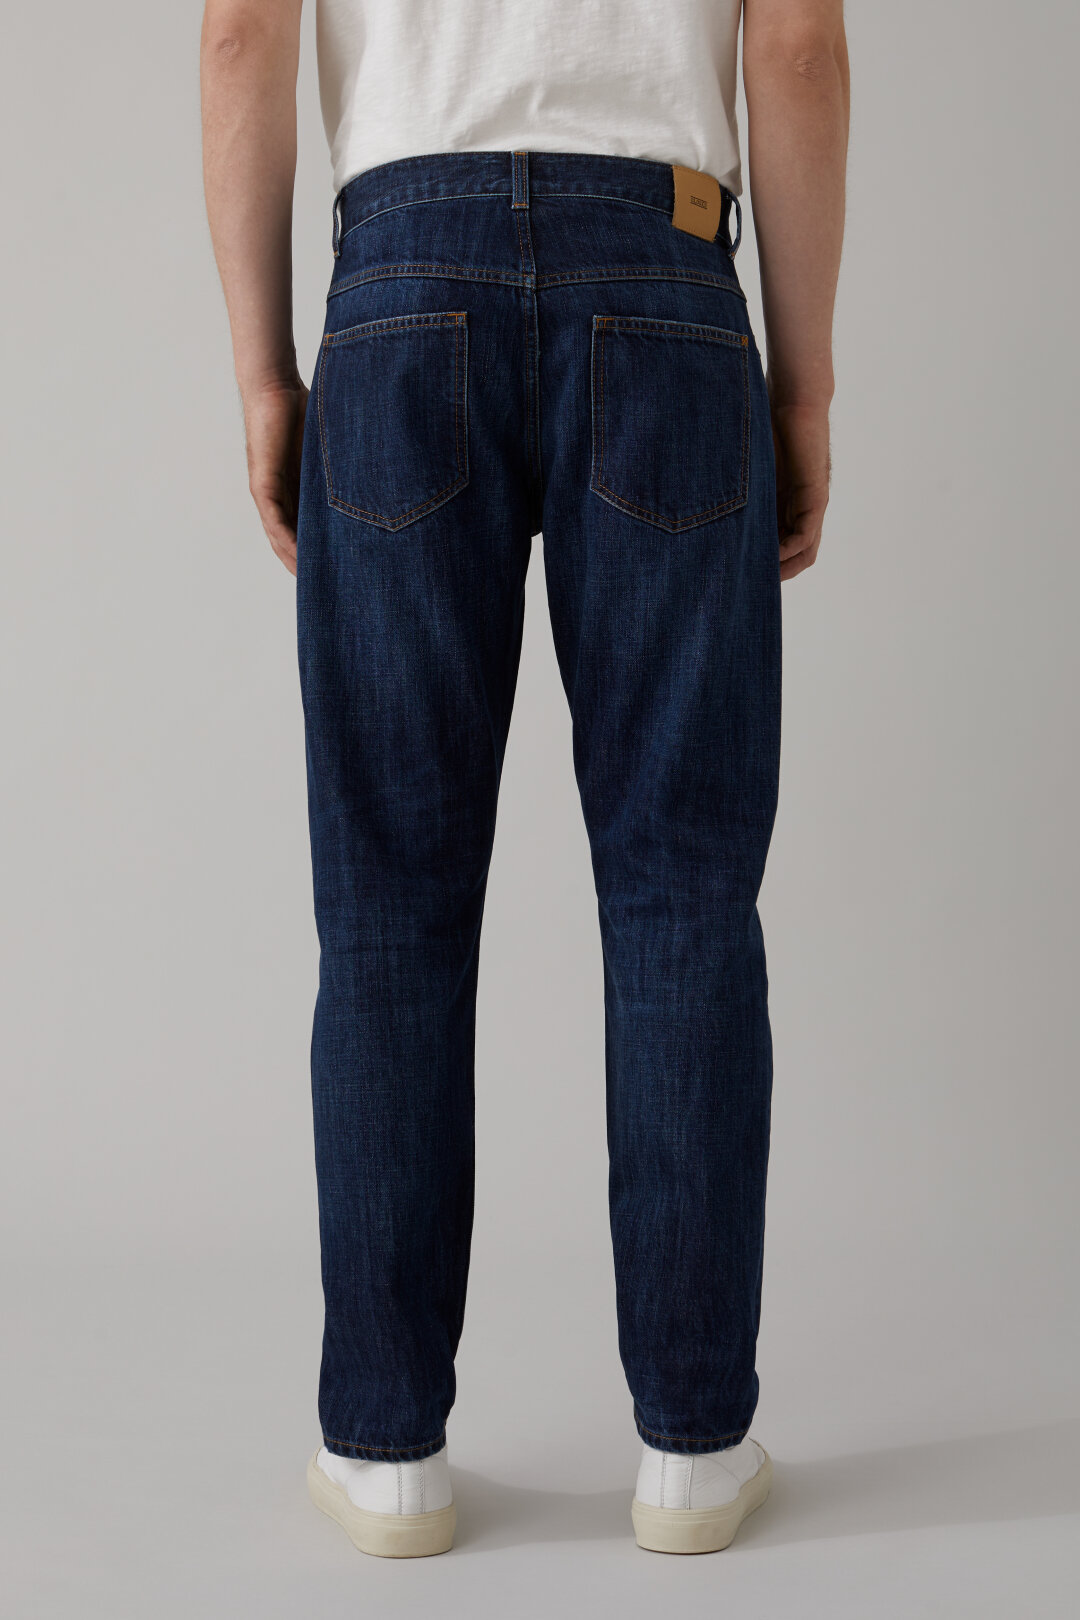 Cooper Tapered Premium Selvedge Denim